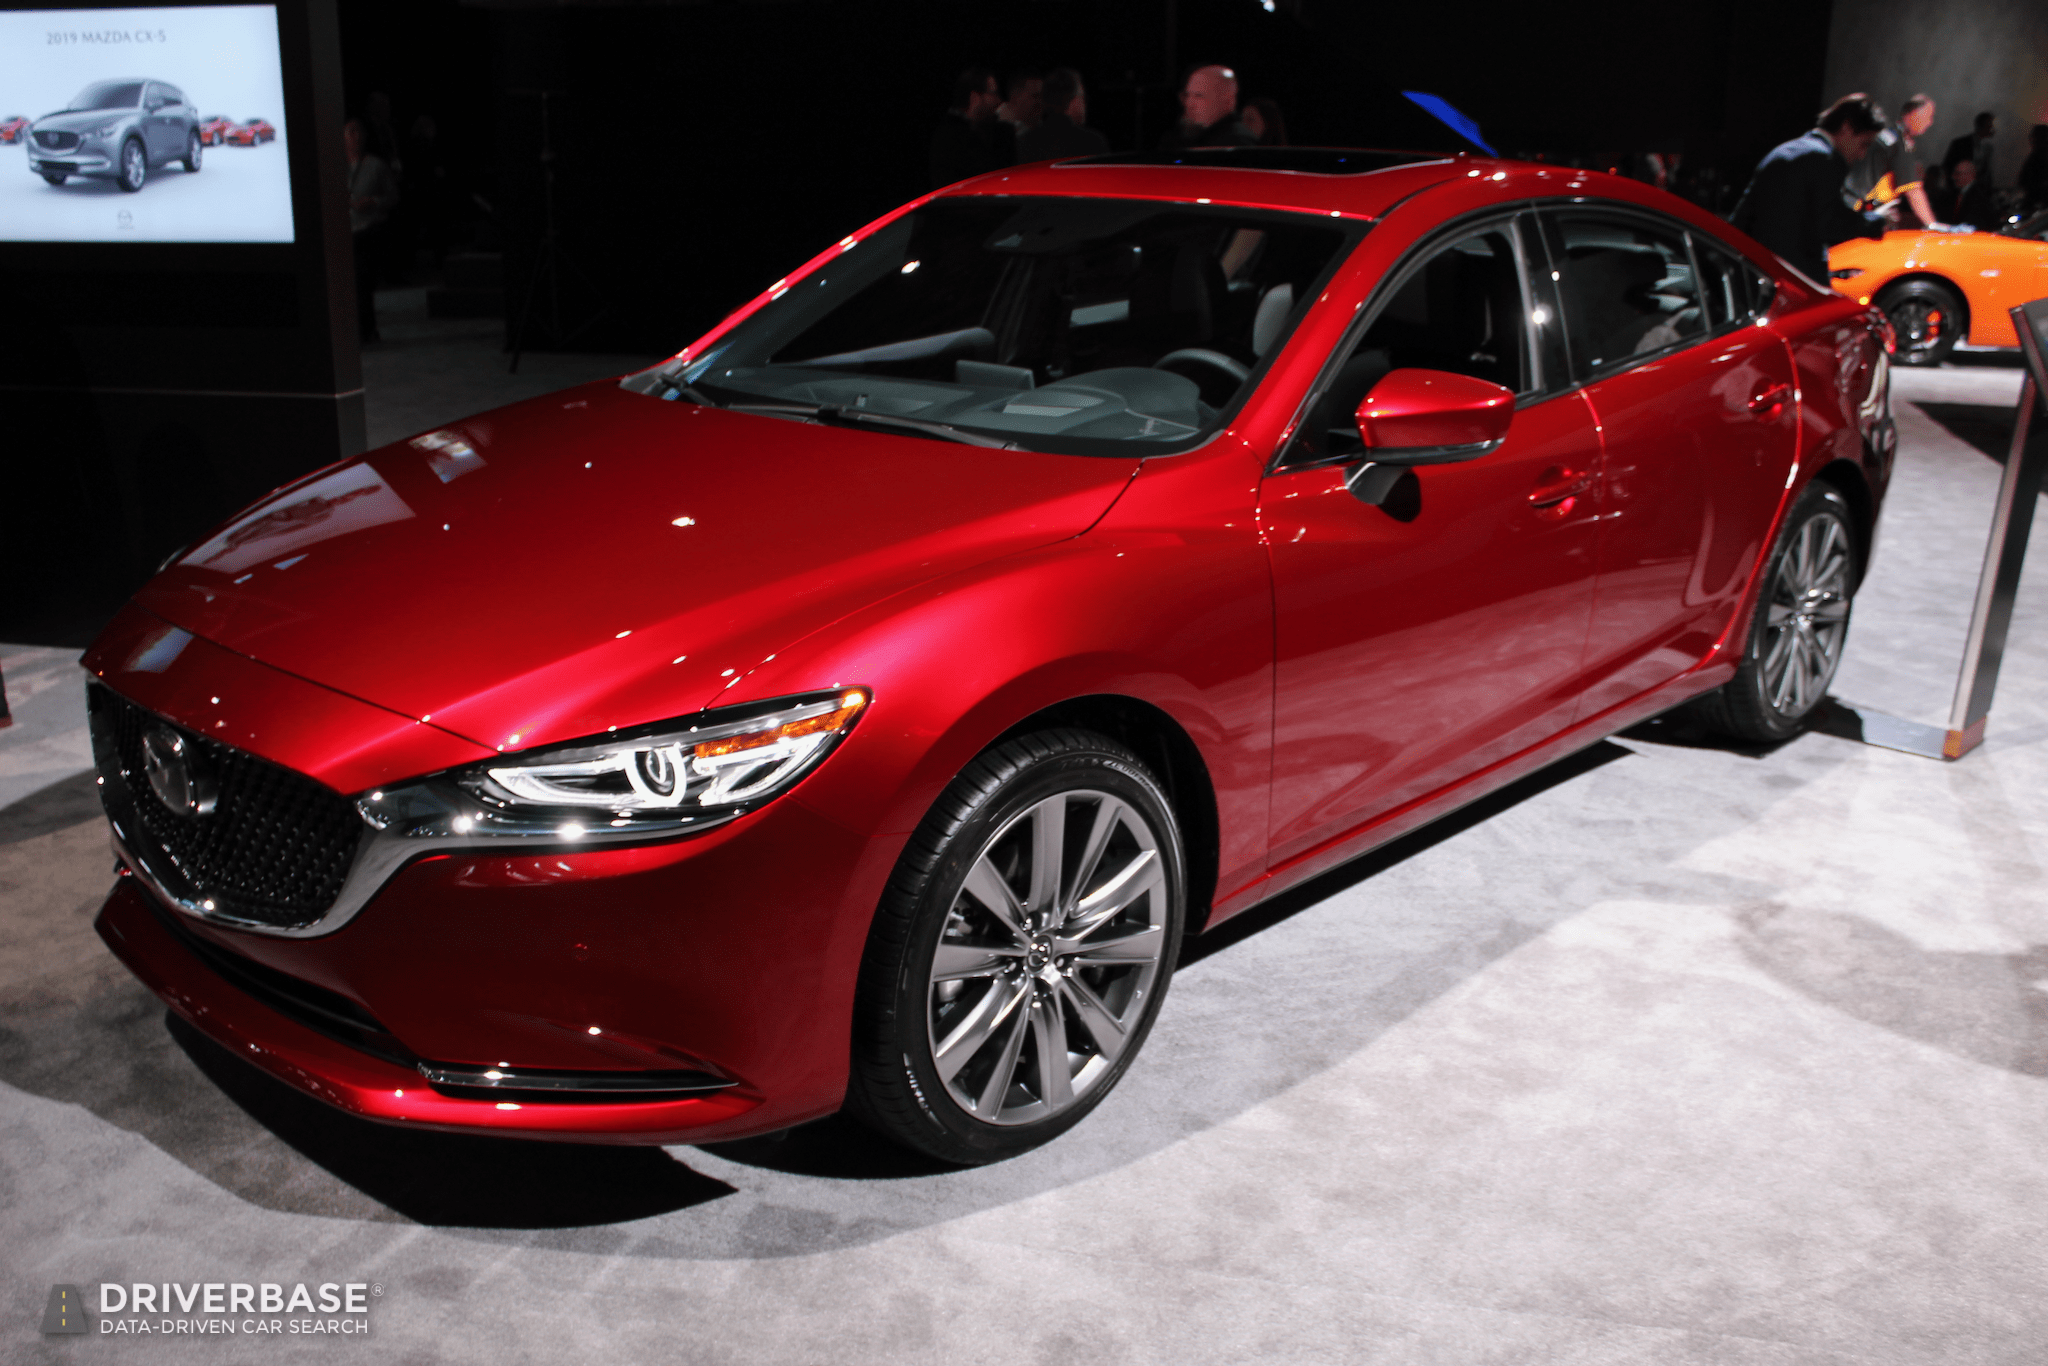 42 New 2020 Mazda 6 Price Design And Review